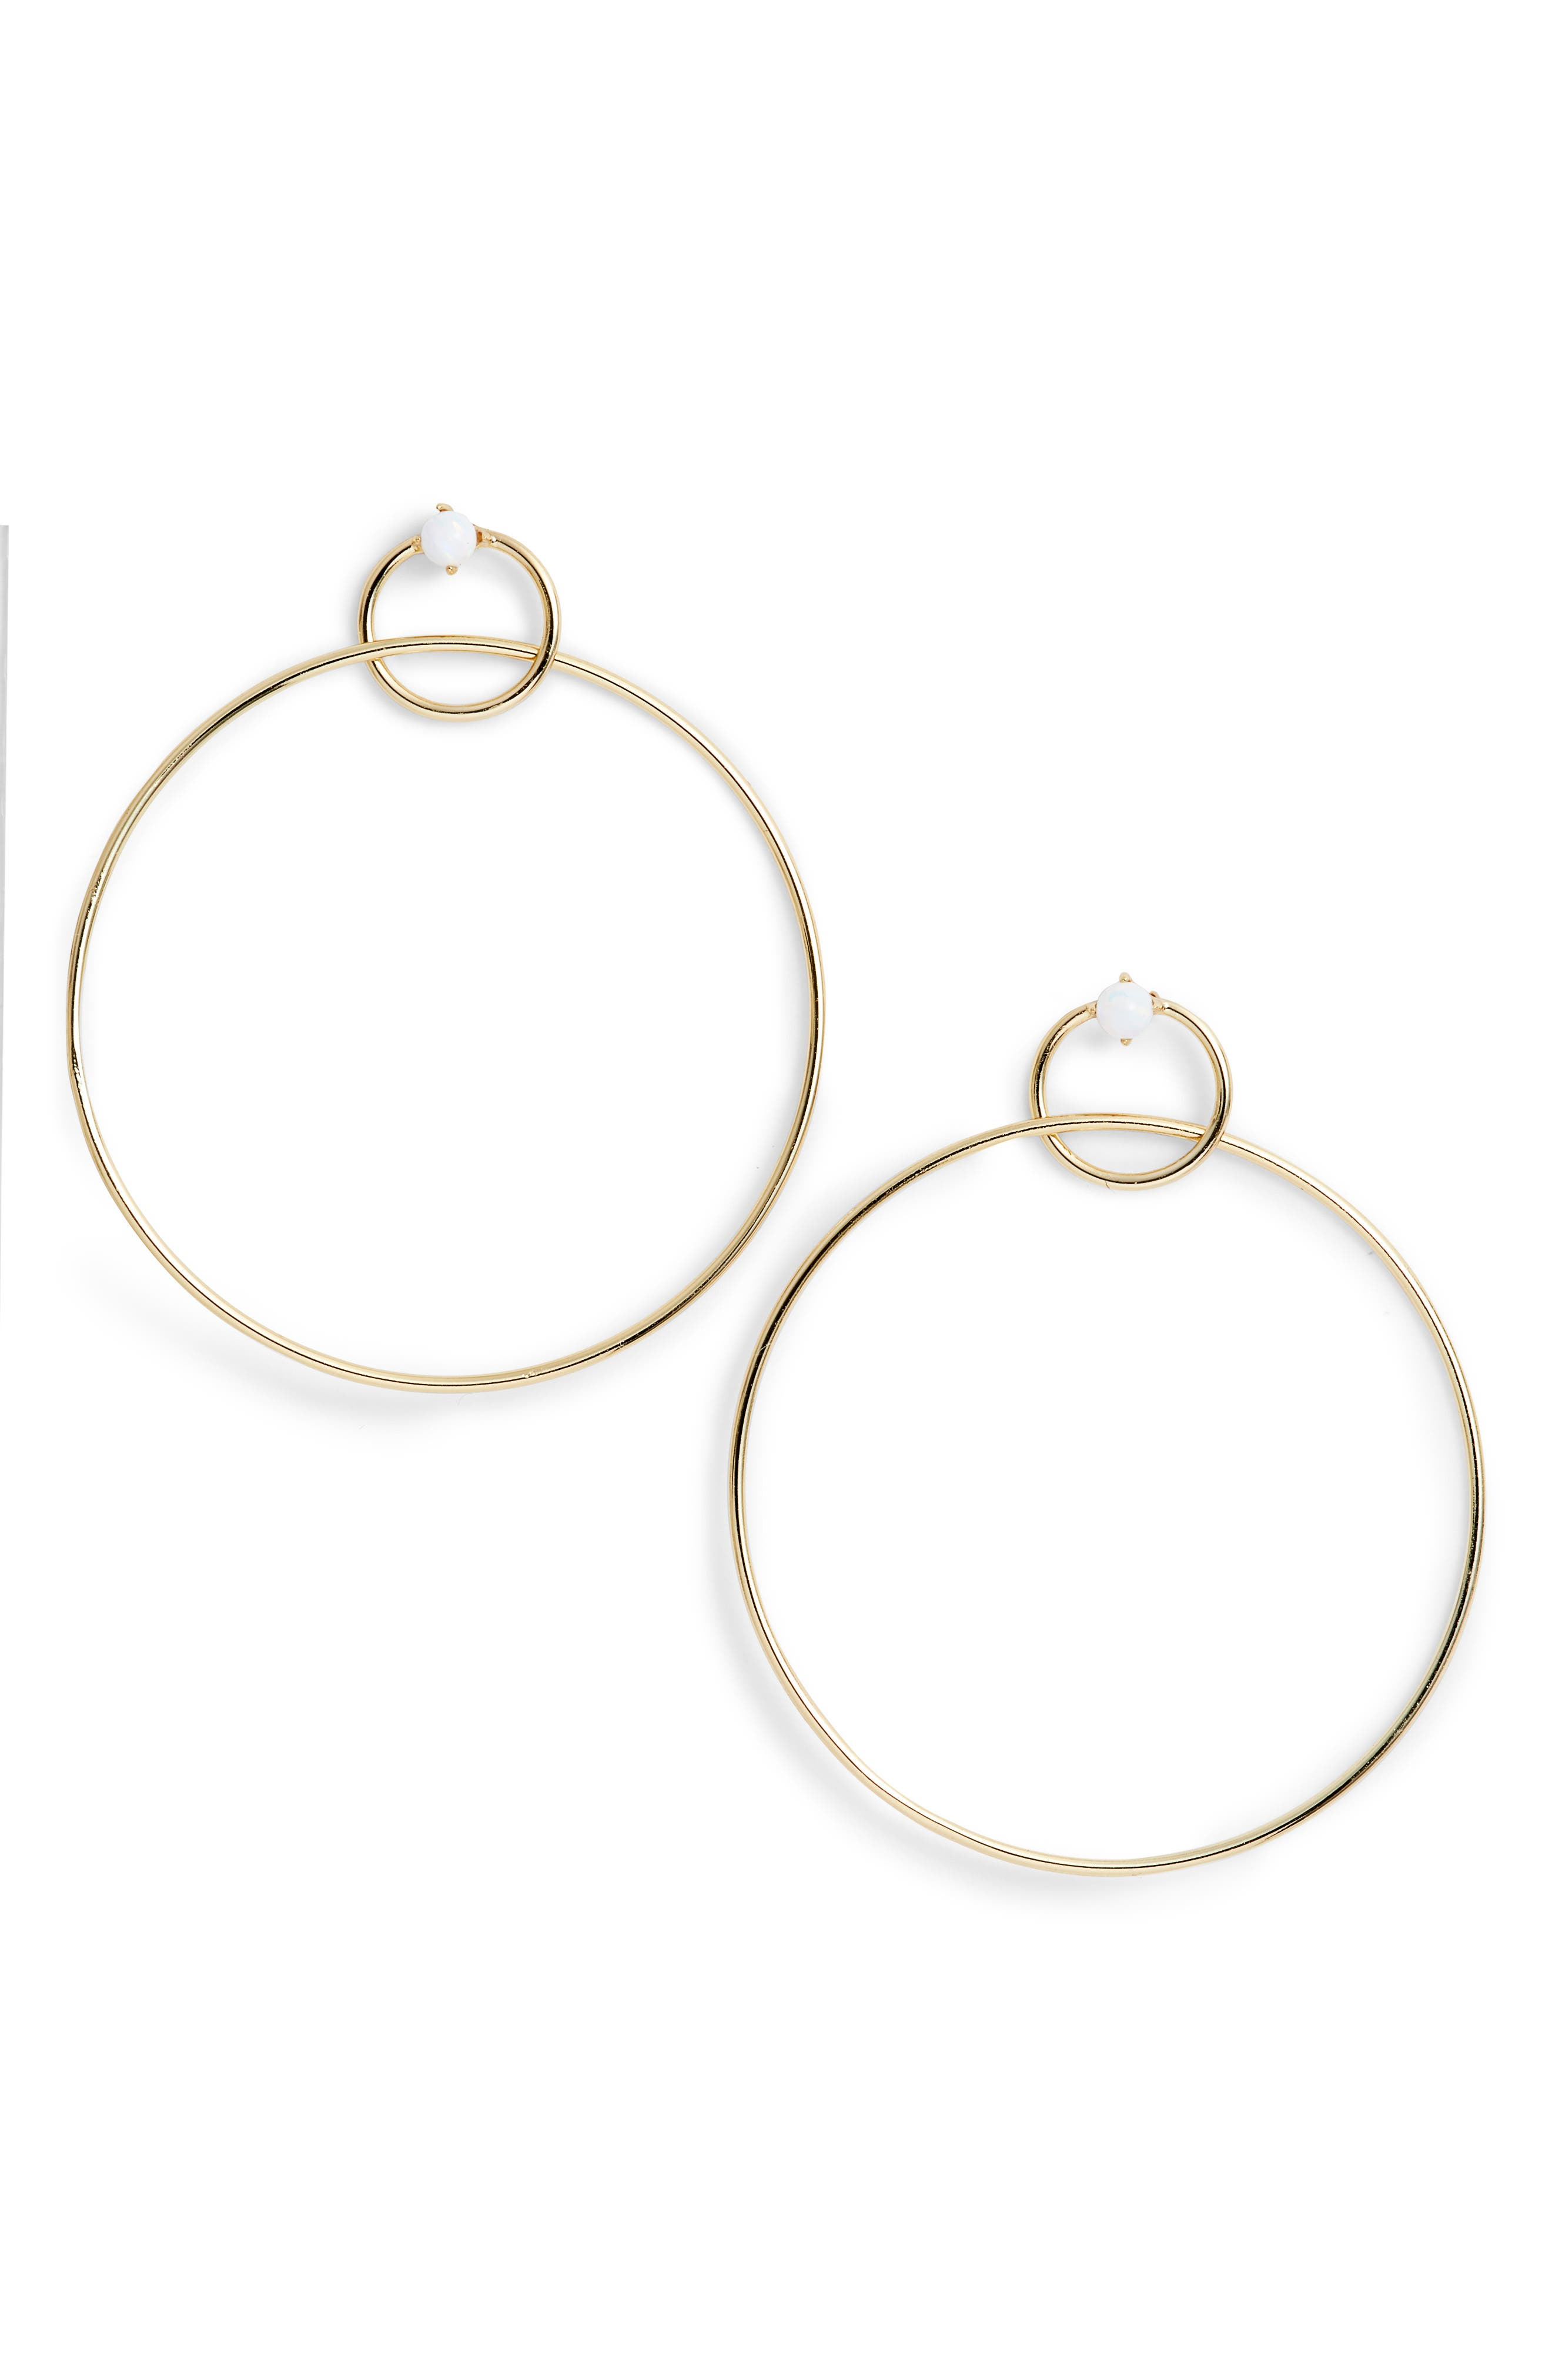 Pearl Accent Double Hoop Drop Earrings,                             Main thumbnail 1, color,                             710